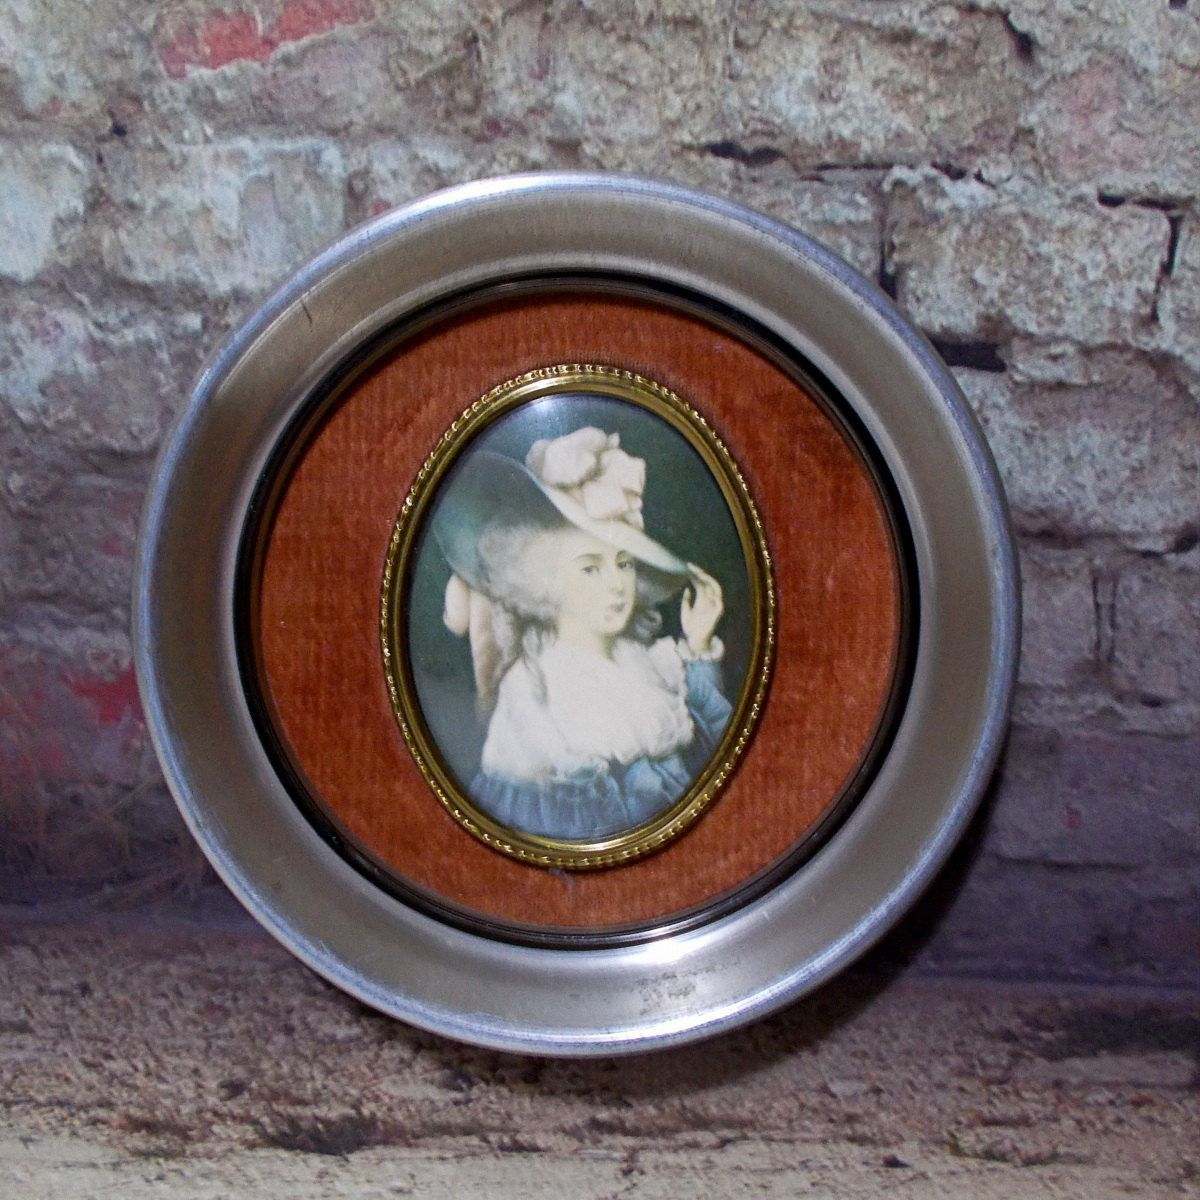 Cameo creations picture elizabeth duchess of devonshire metal cameo creations picture elizabeth duchess of devonshire metal frame convex bubble glass wall hanging by tntbrbefan jeuxipadfo Image collections